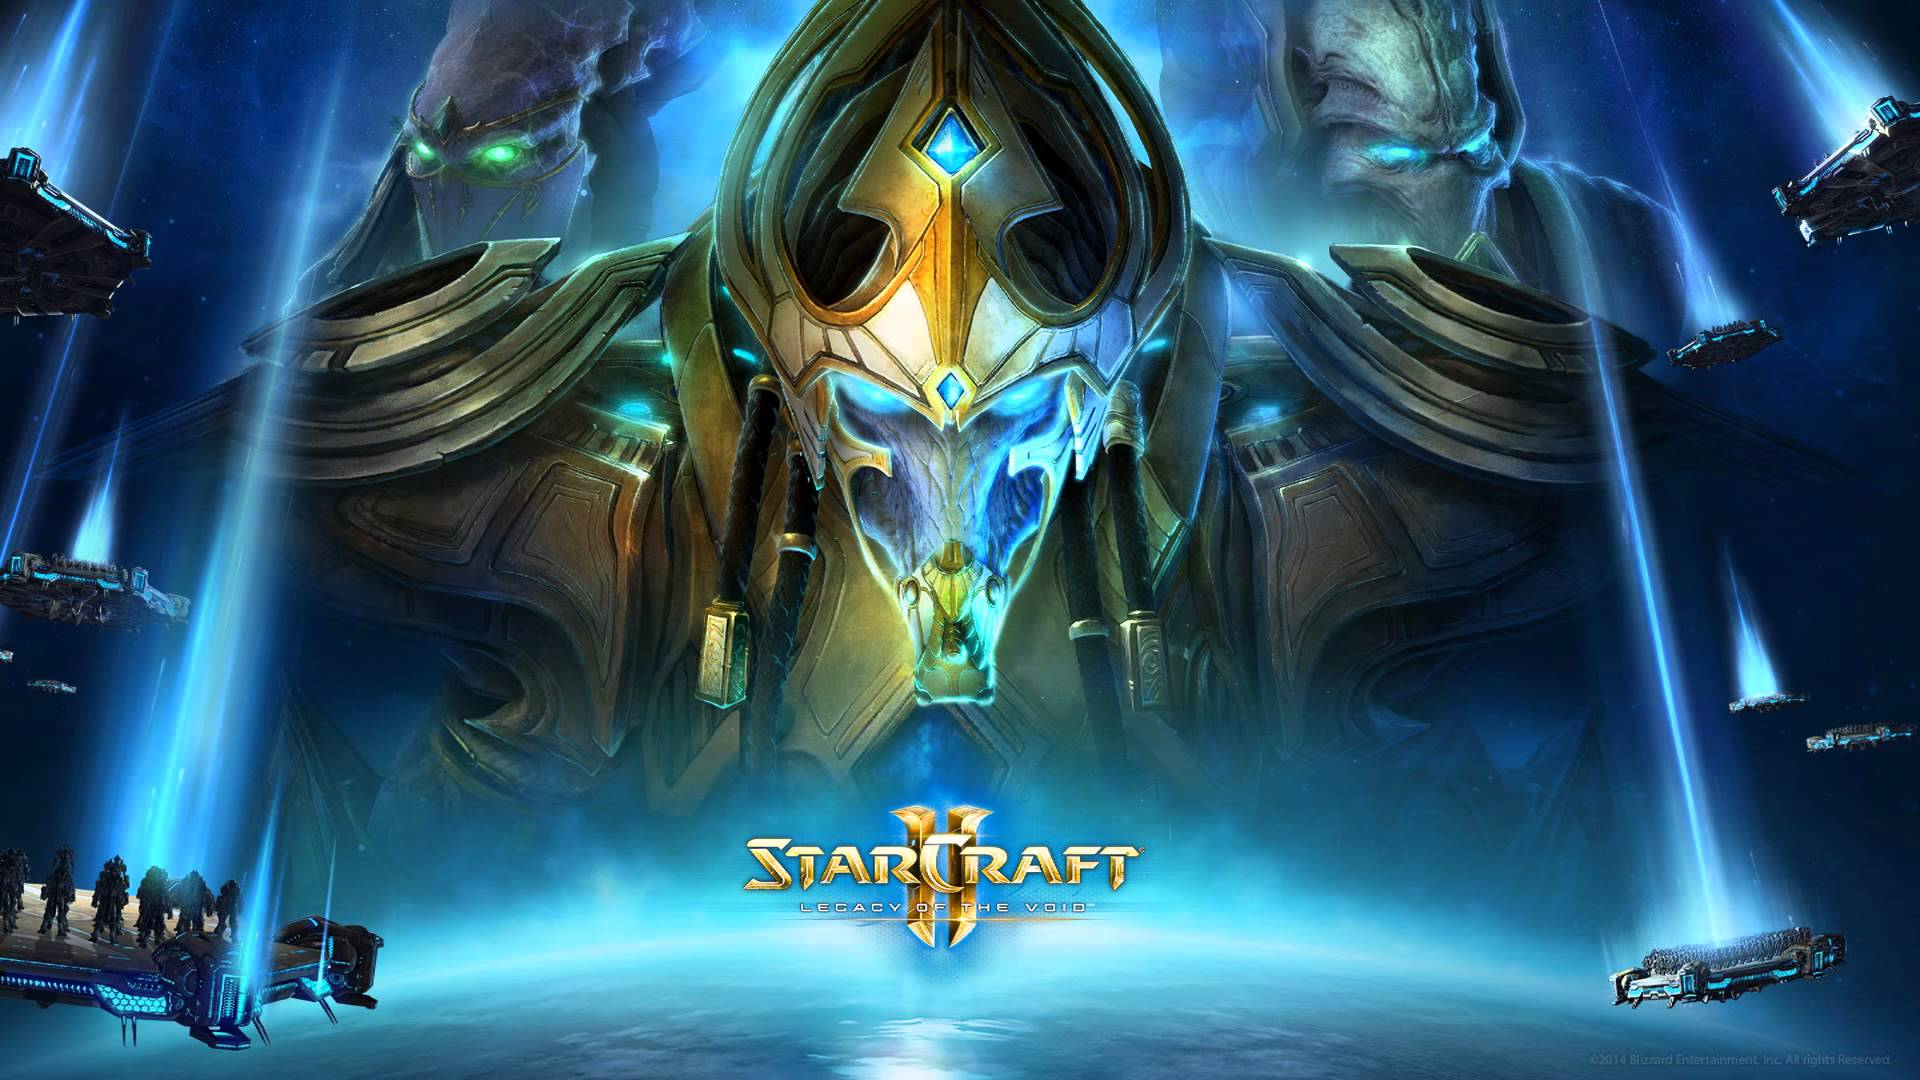 Starcraft 2 War Chest pohlepe